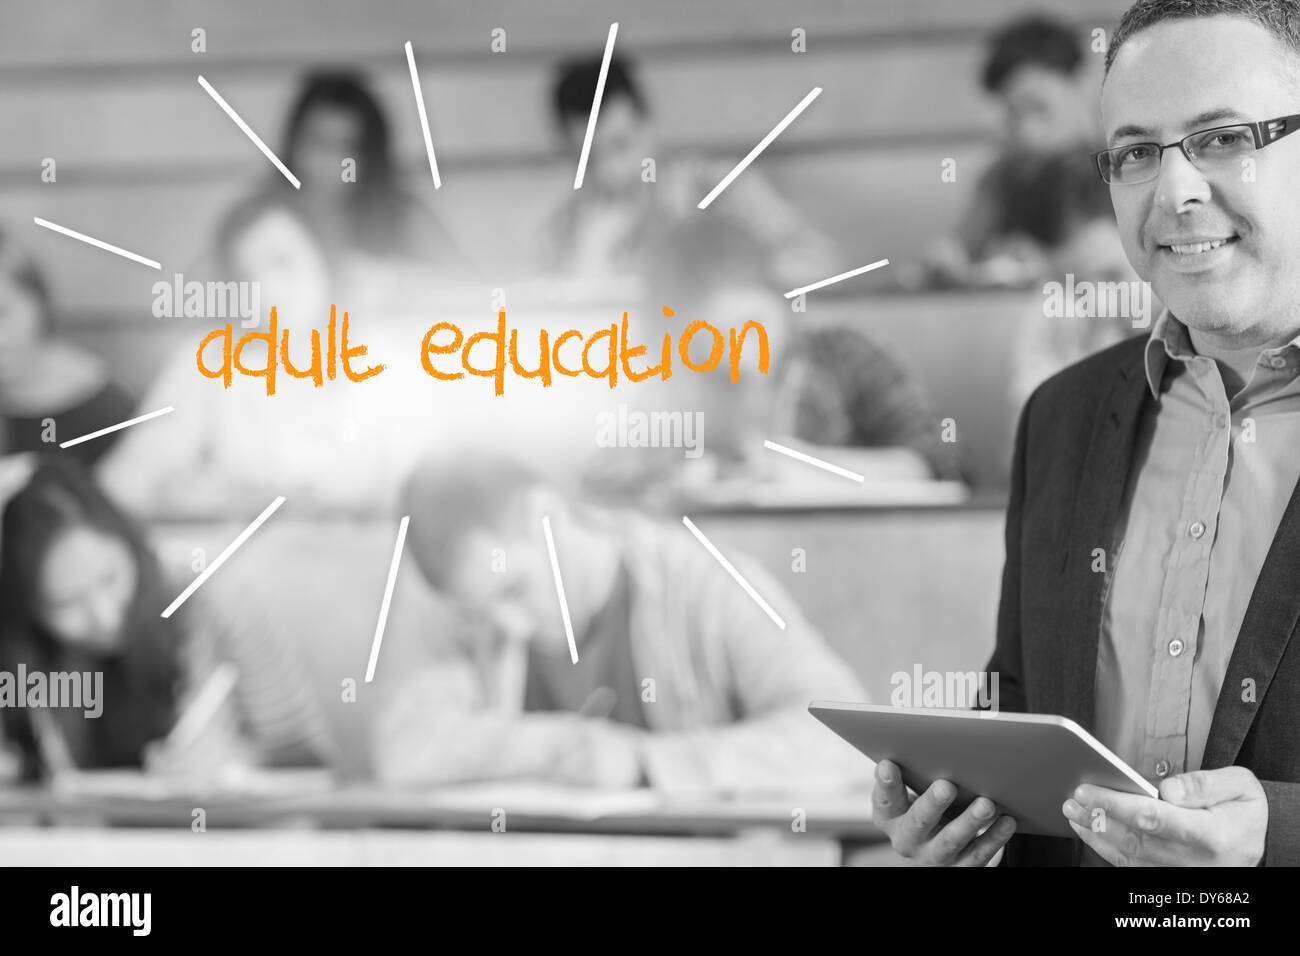 Adult education against lecturer standing in front of his class in lecture hall - Stock Image